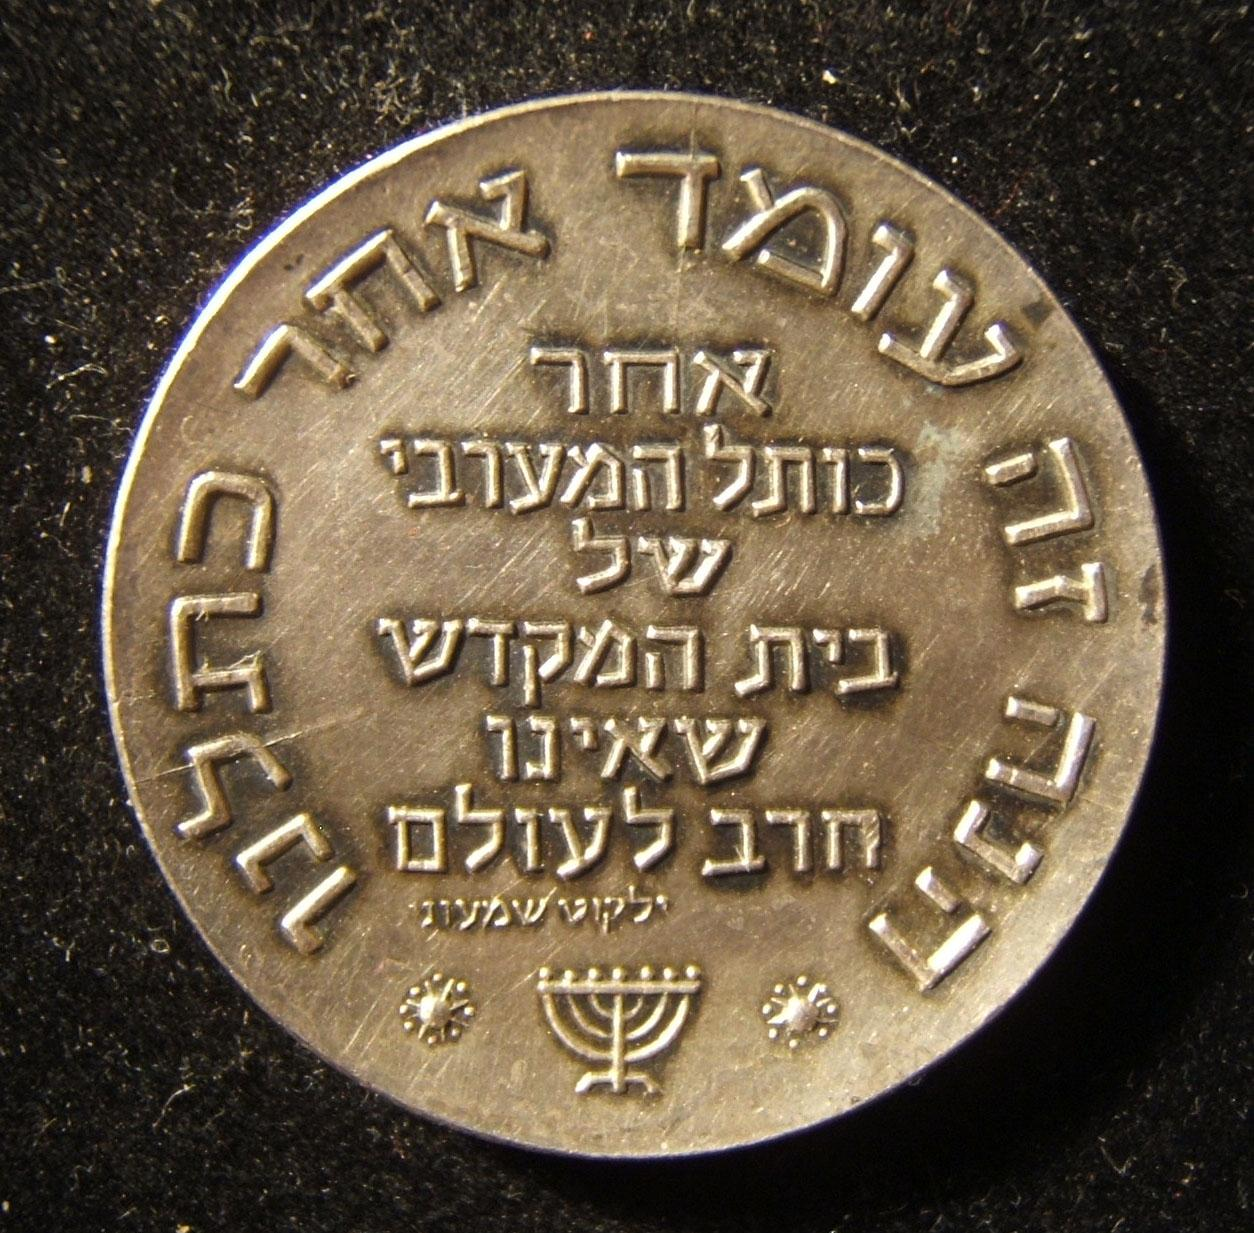 Israeli Tisha BeAv/9th of Av silver art medal by Kretchmer, 1961